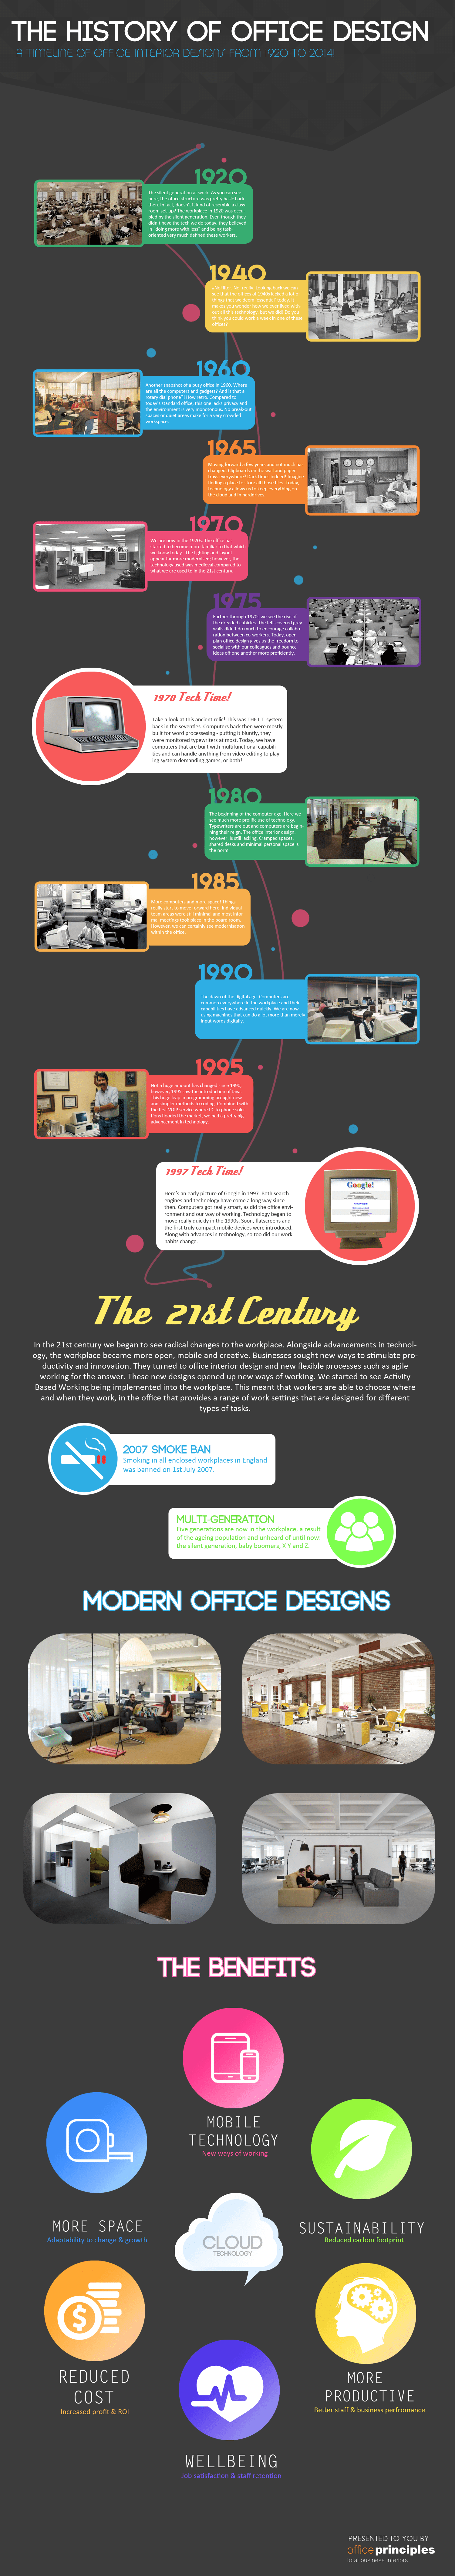 Timeline Infographic - Final  sc 1 st  Office Principles & The history of office interior design | Office Principles